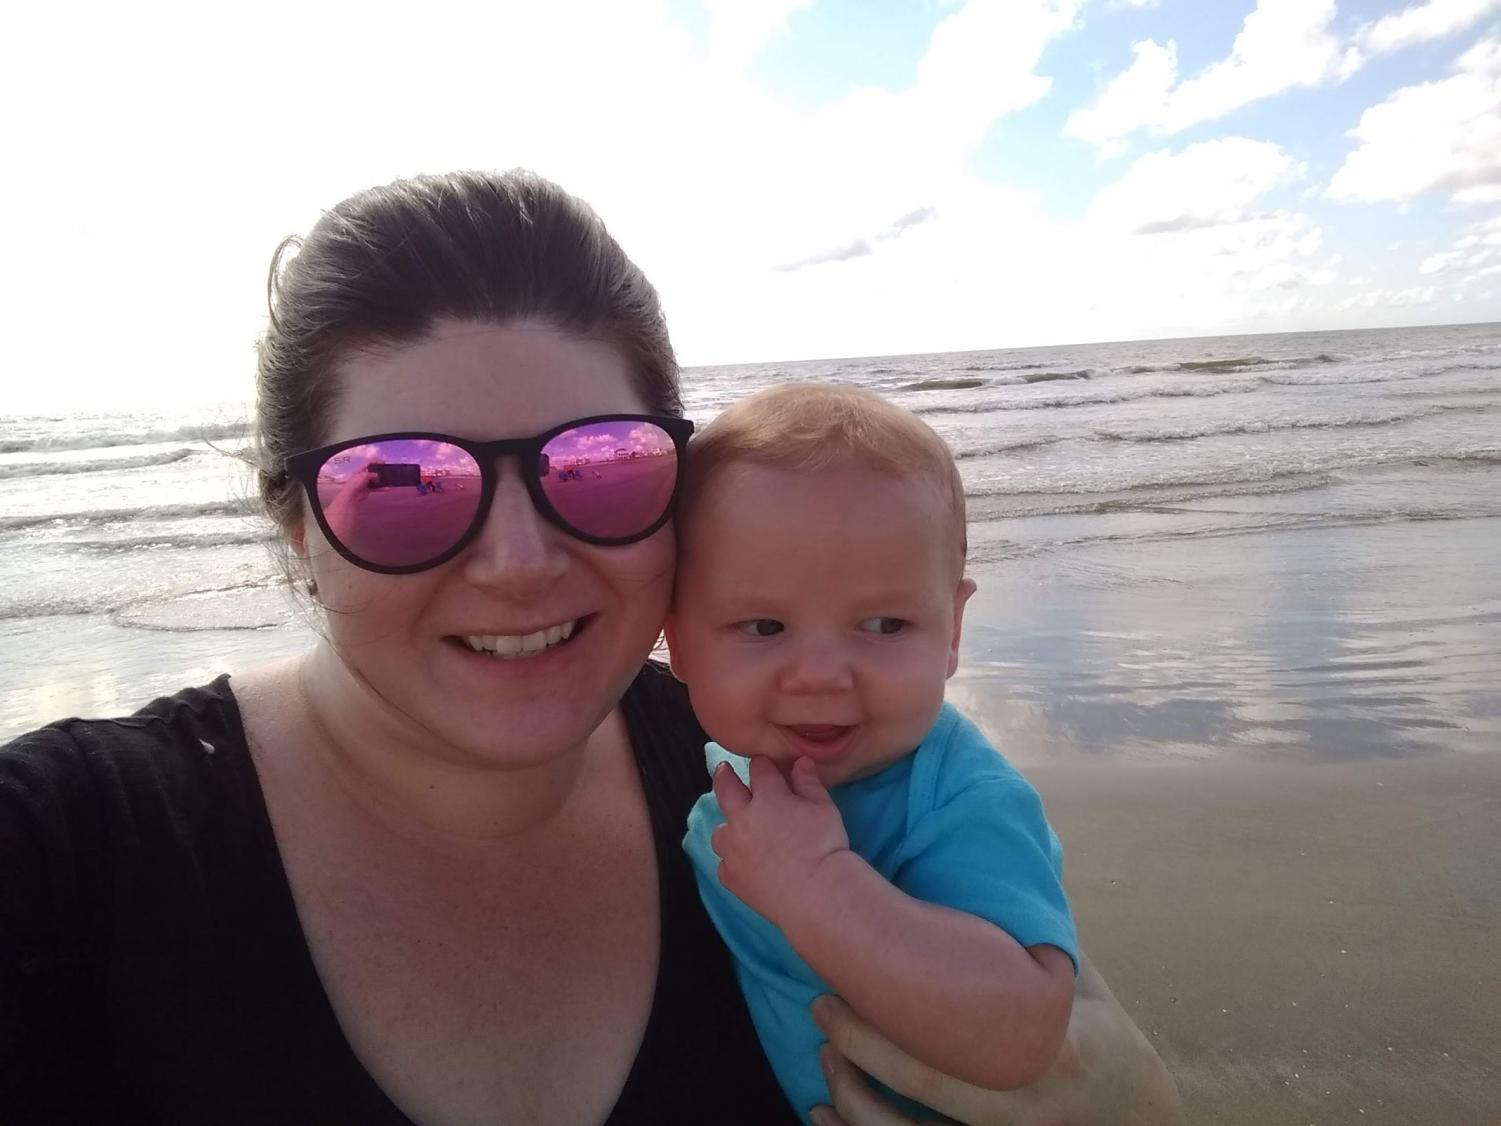 Kim McFarland At The Beach With Her Son